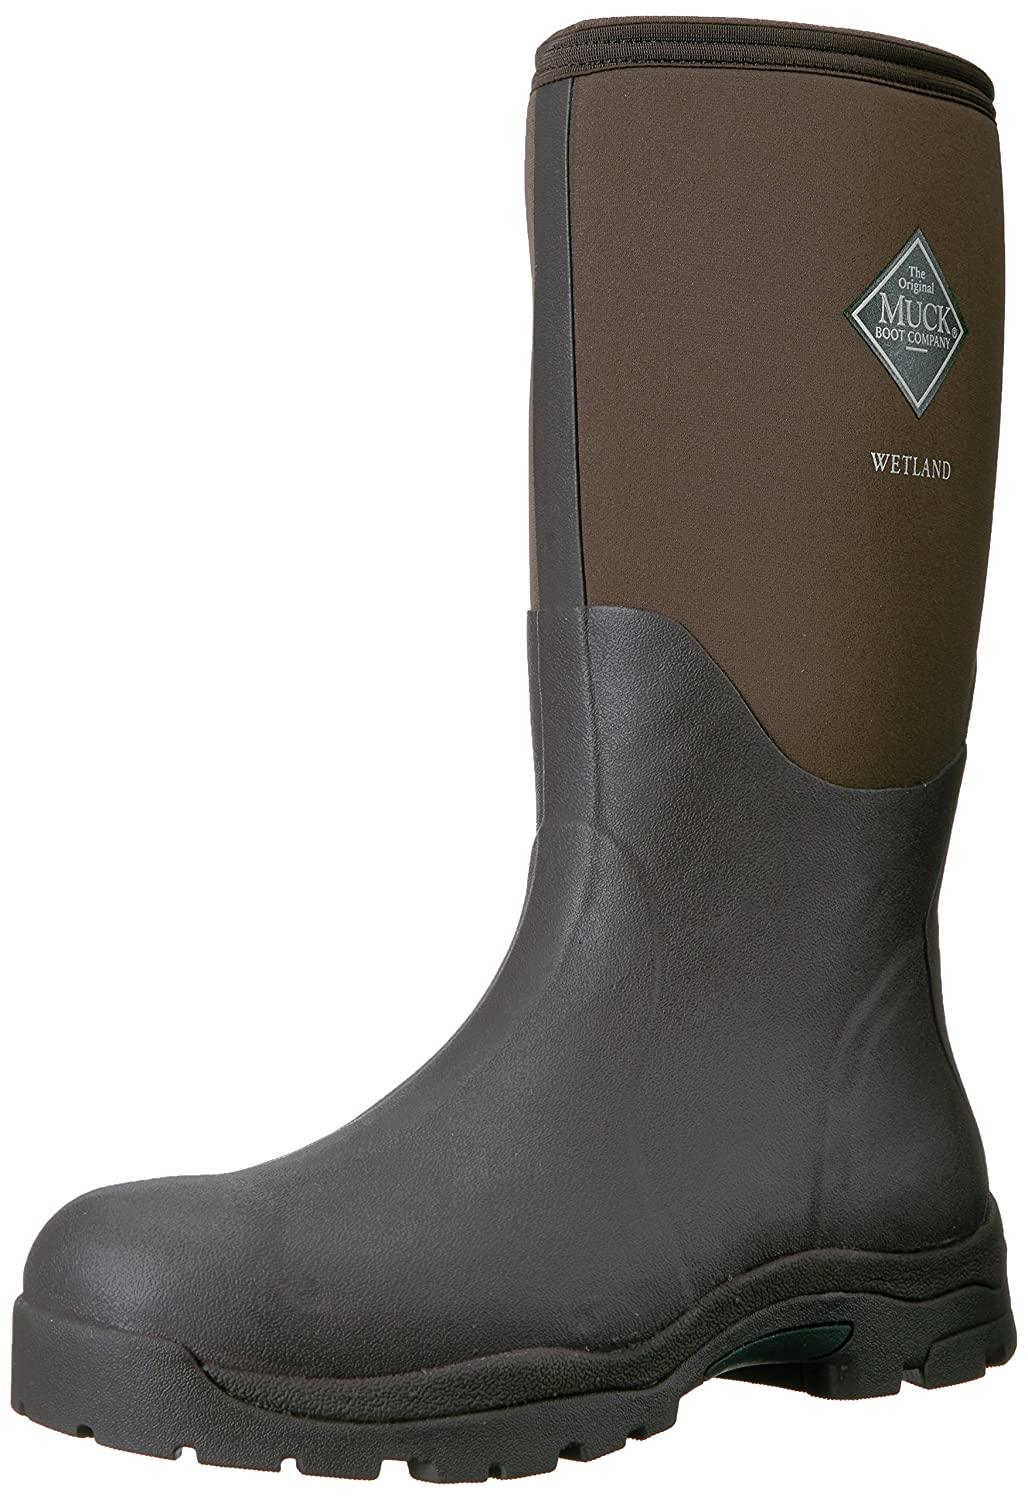 Muck Boot Womens Wetland Boot B0083IA7RC 9|Bark